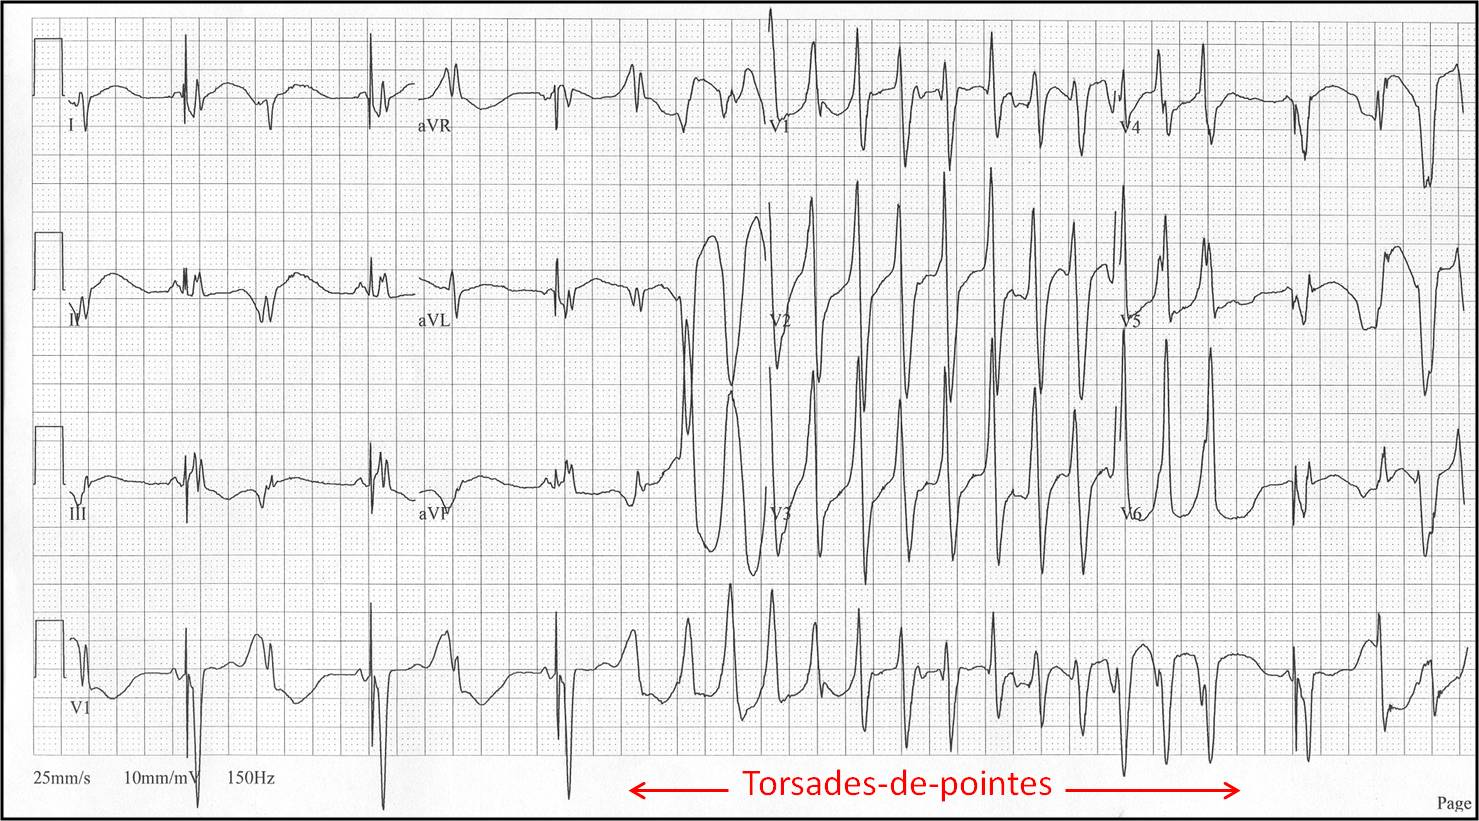 [Torsades de pointes]{Frank G.Yanowitz, M.D.}Brief episode of torsade-de-pointes in a patient with a ventricular pacemaker having PVC's in a pattern of bigeminy.